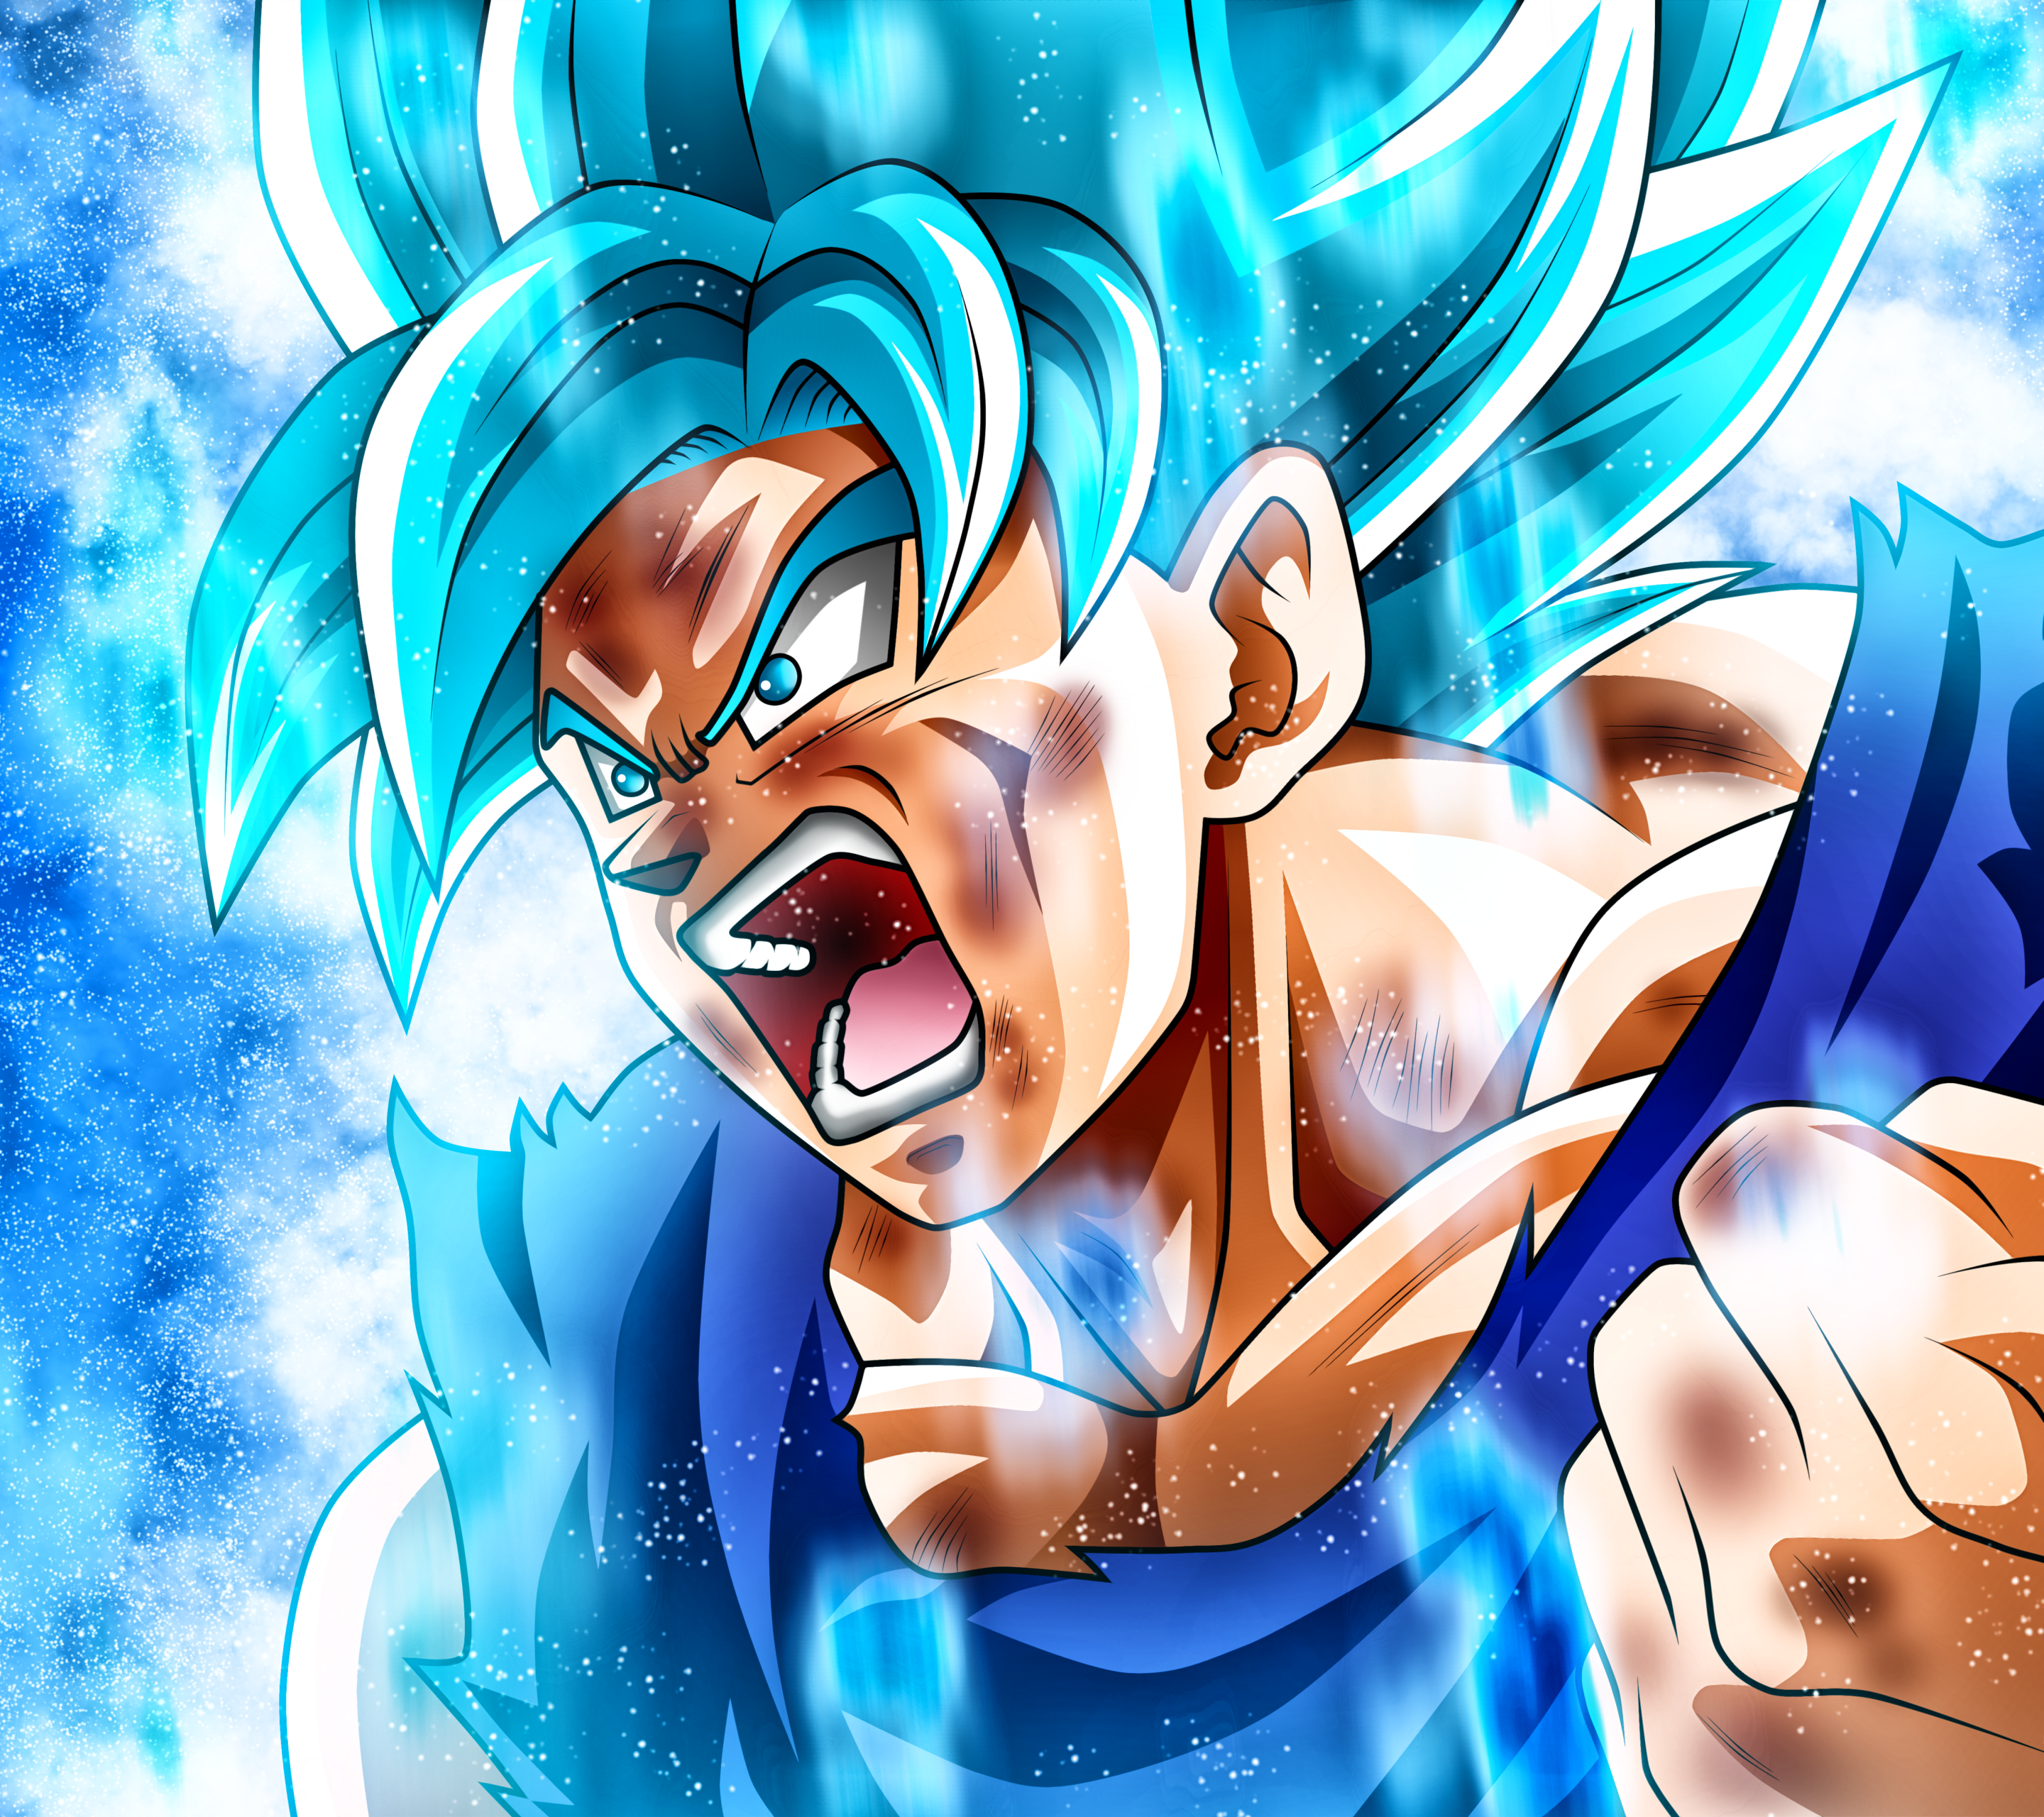 Download This Wallpaper Anime Dragon Ball Super 2880x2560 For All